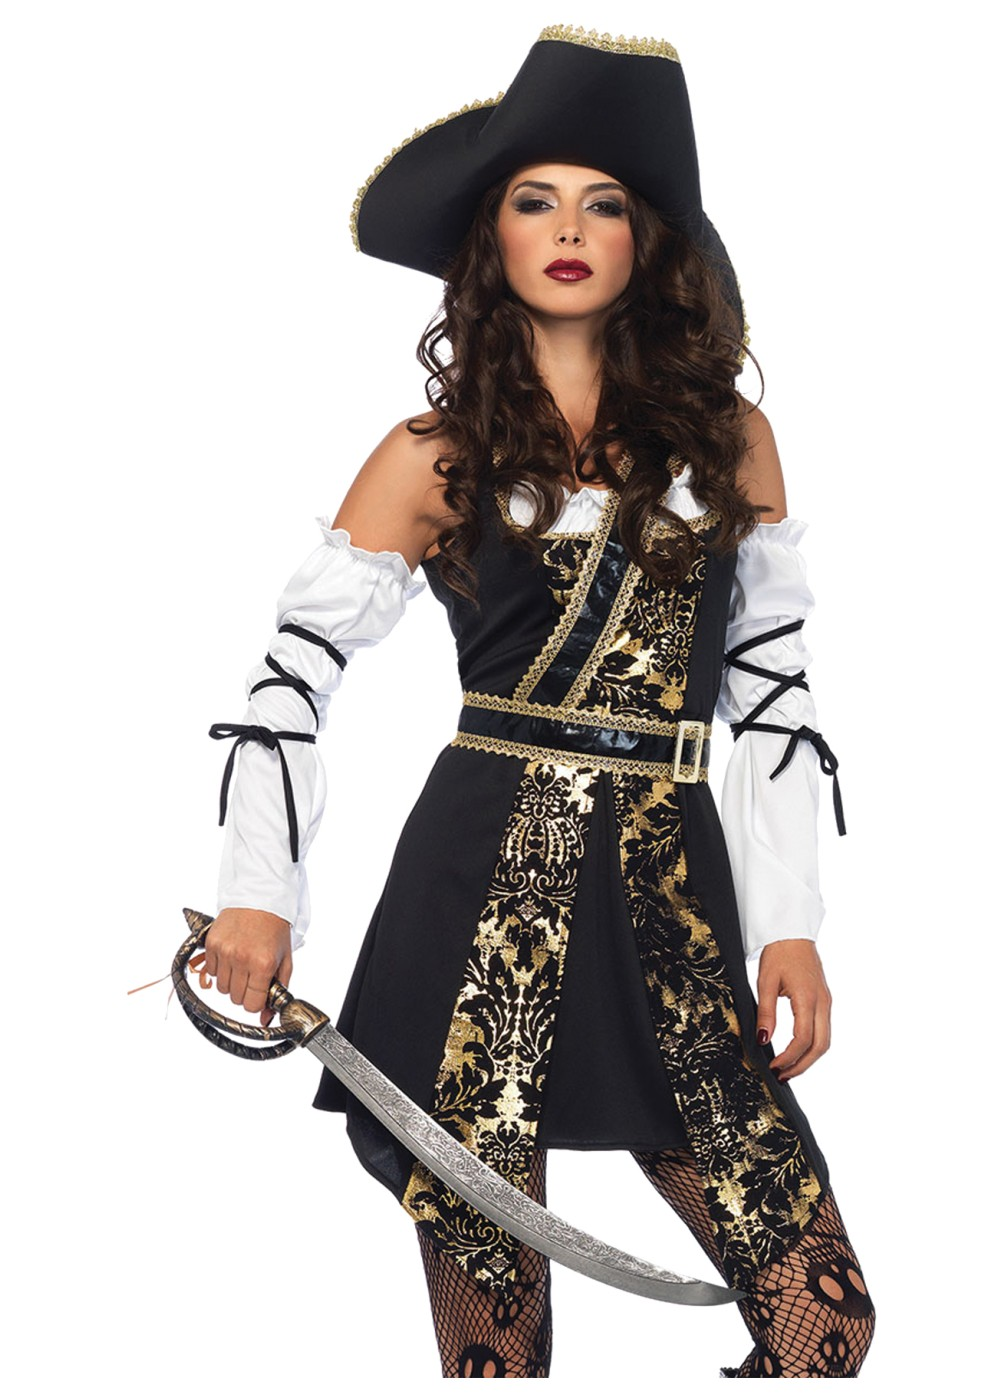 Adult Pirate Costume - Men, Women Pirate Halloween Costumes On Sale